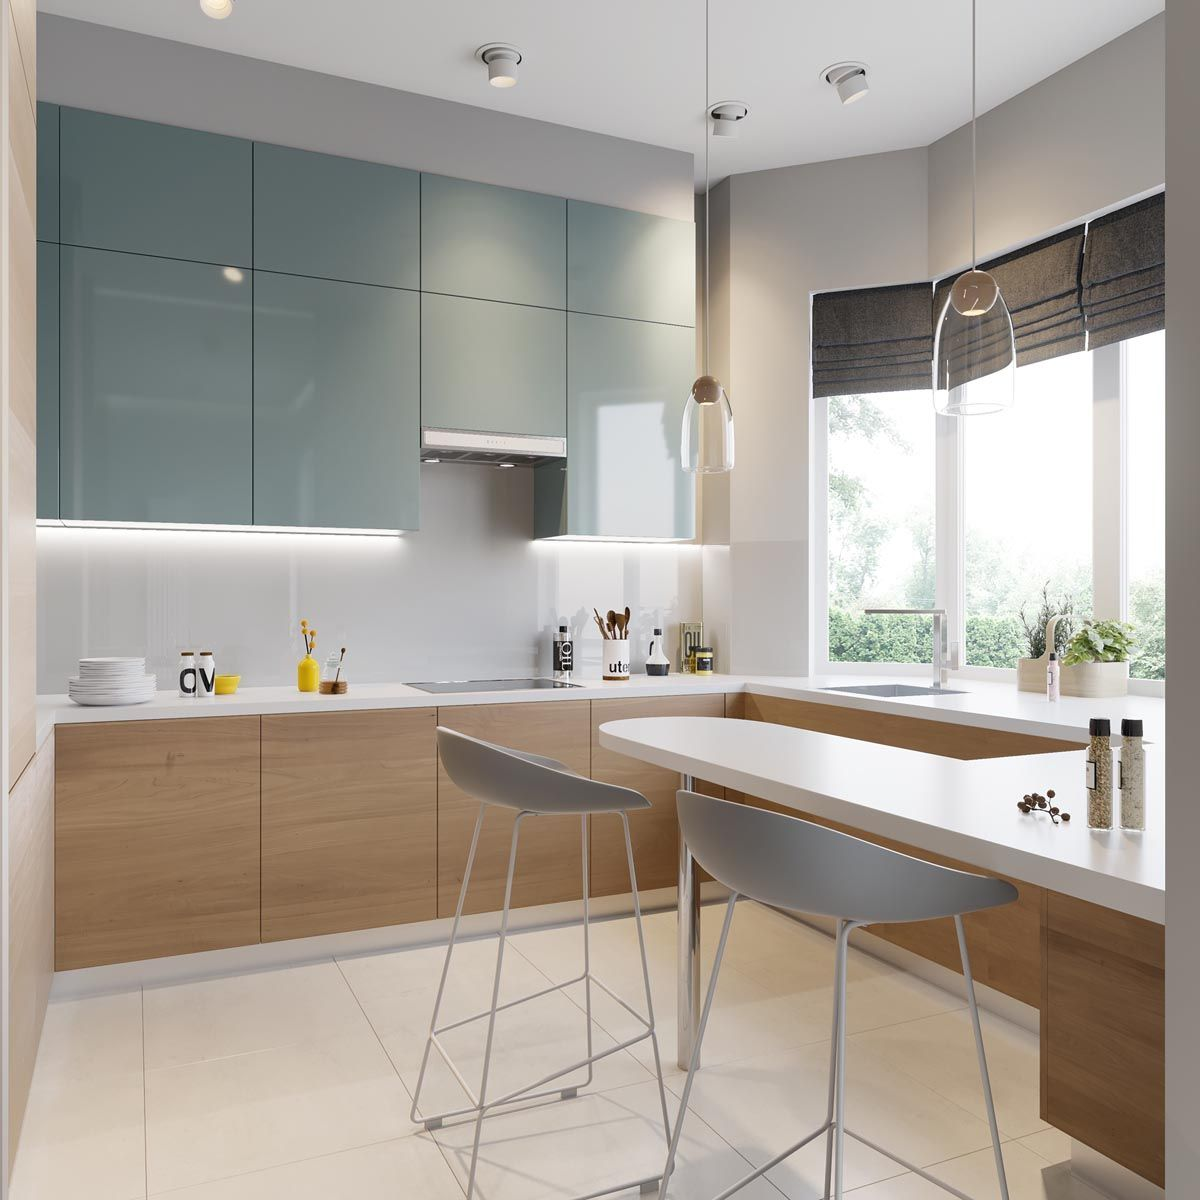 Apartment Kitchens Designs: 5 Contrasting Small Apartment Designs